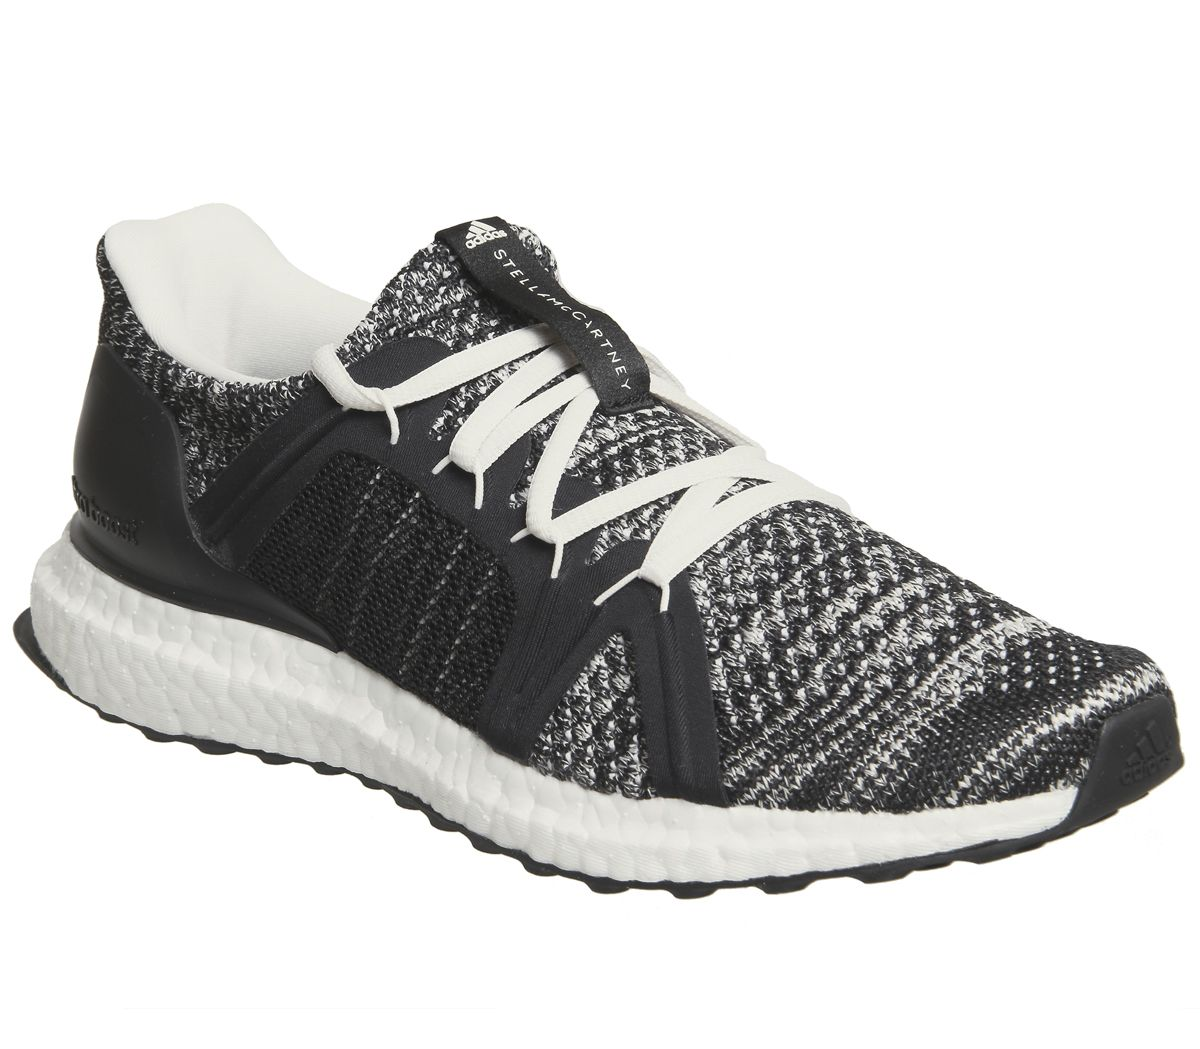 3120a93b2a3 adidas Stella McCartney Stella Mccartney X Ultra Boost Black White ...